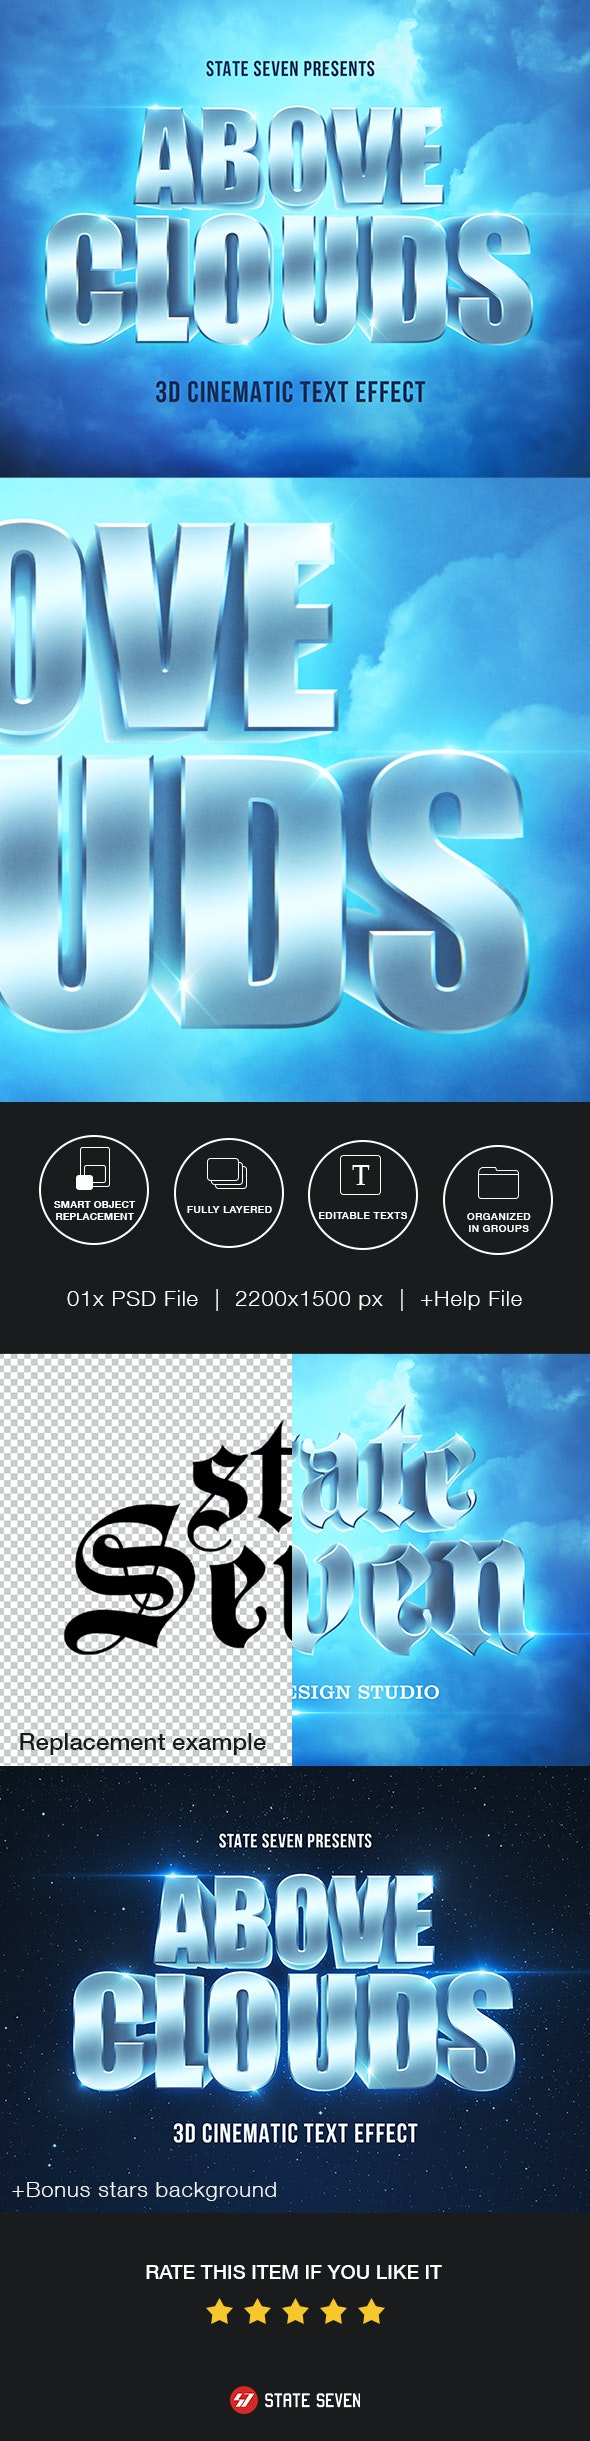 Cinematic 3D Text Effect - Text Effects Actions